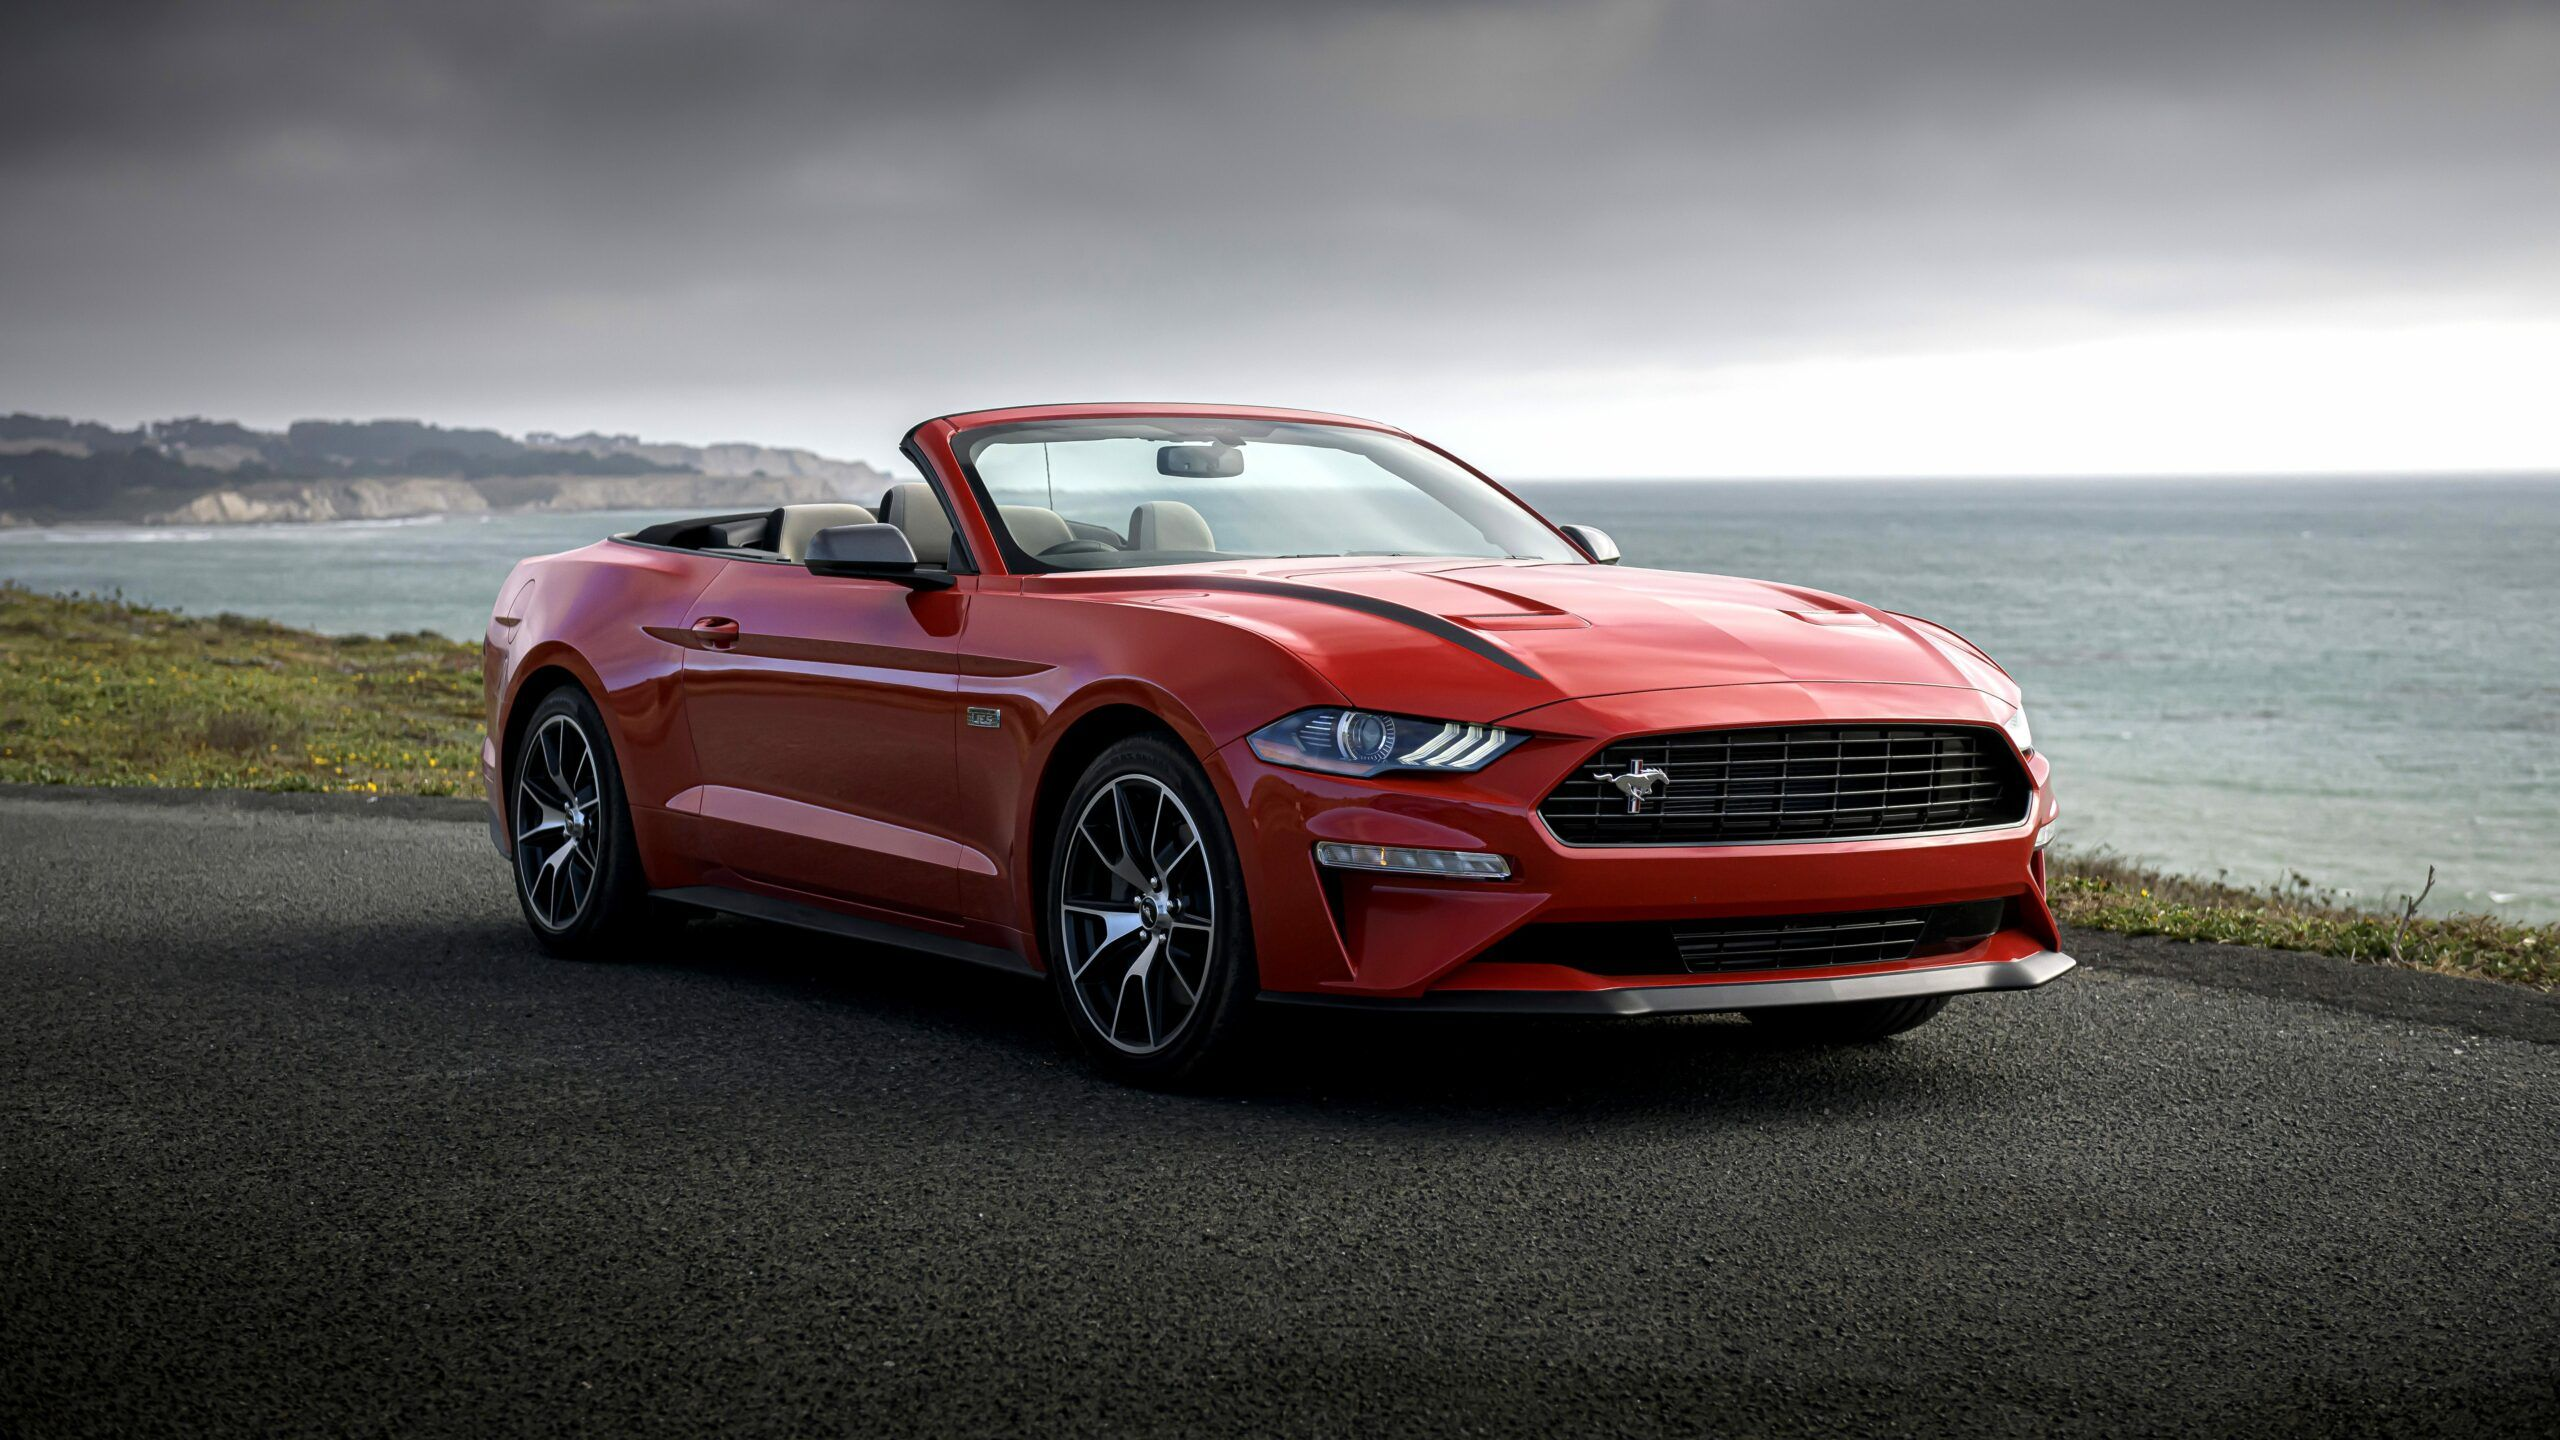 Ford Mustang Ecoboost 2020 Concept And Review Mustang Ecoboost Ford Mustang Ecoboost Ford Mustang